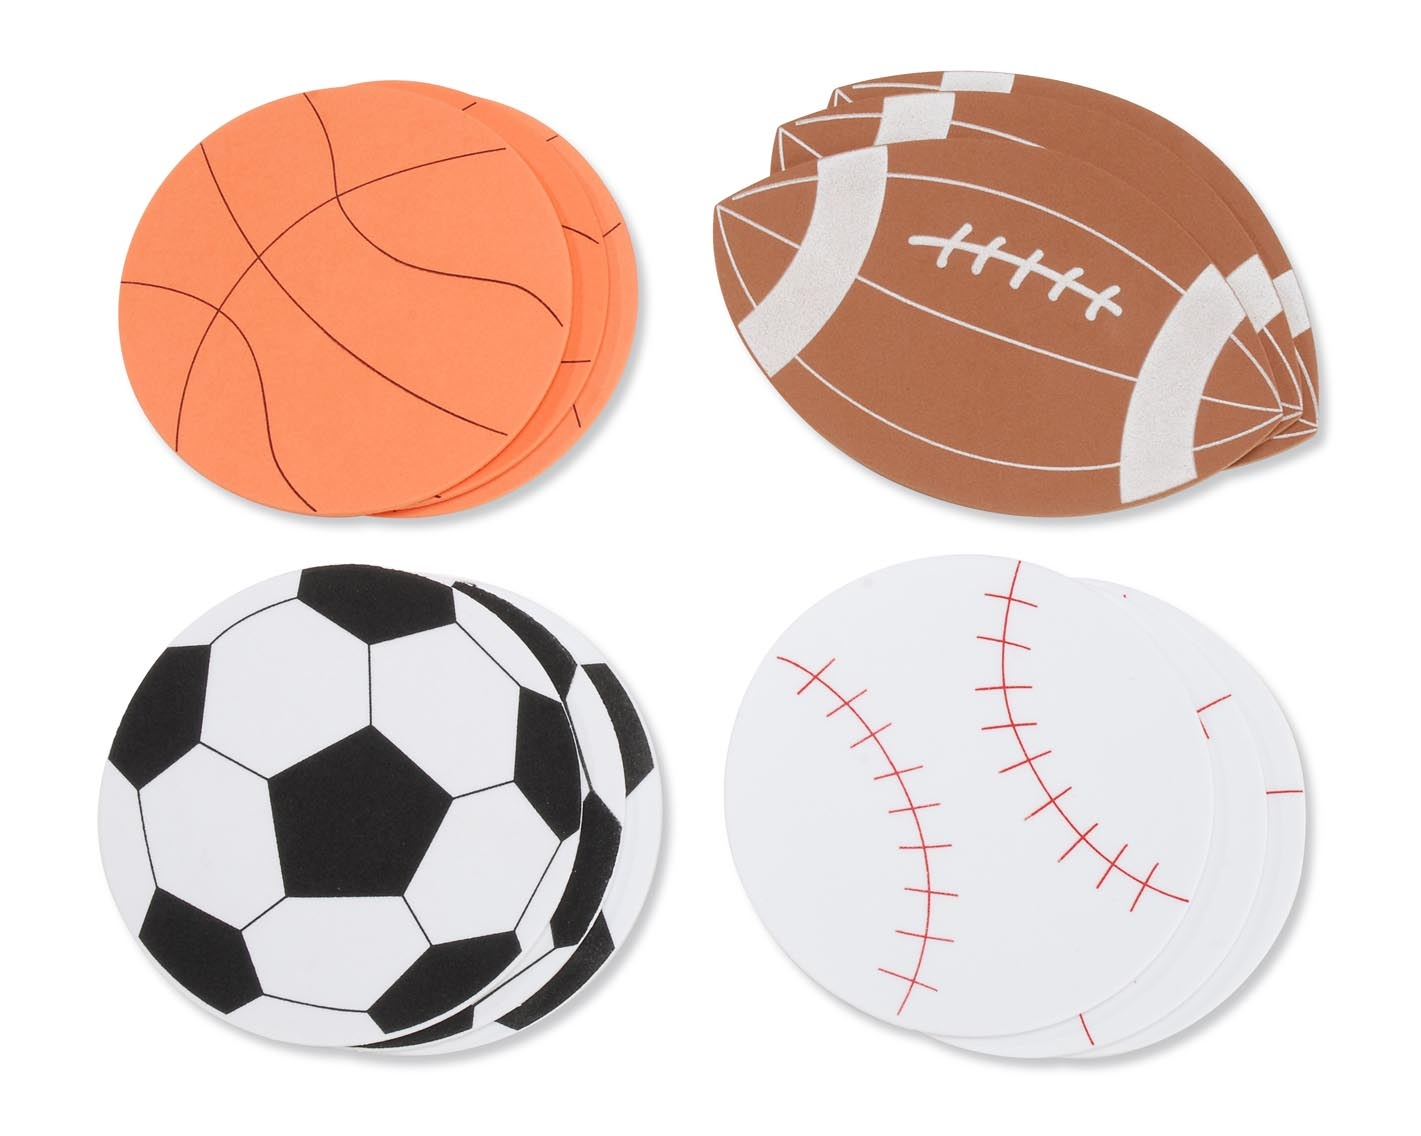 Soccer ball craft ideas - Pack Contains 12 3 Of Each Design Shown Pre Cut 2mm Sports Balls Use Glue Hole Punch Attach Ribbon For Hanging